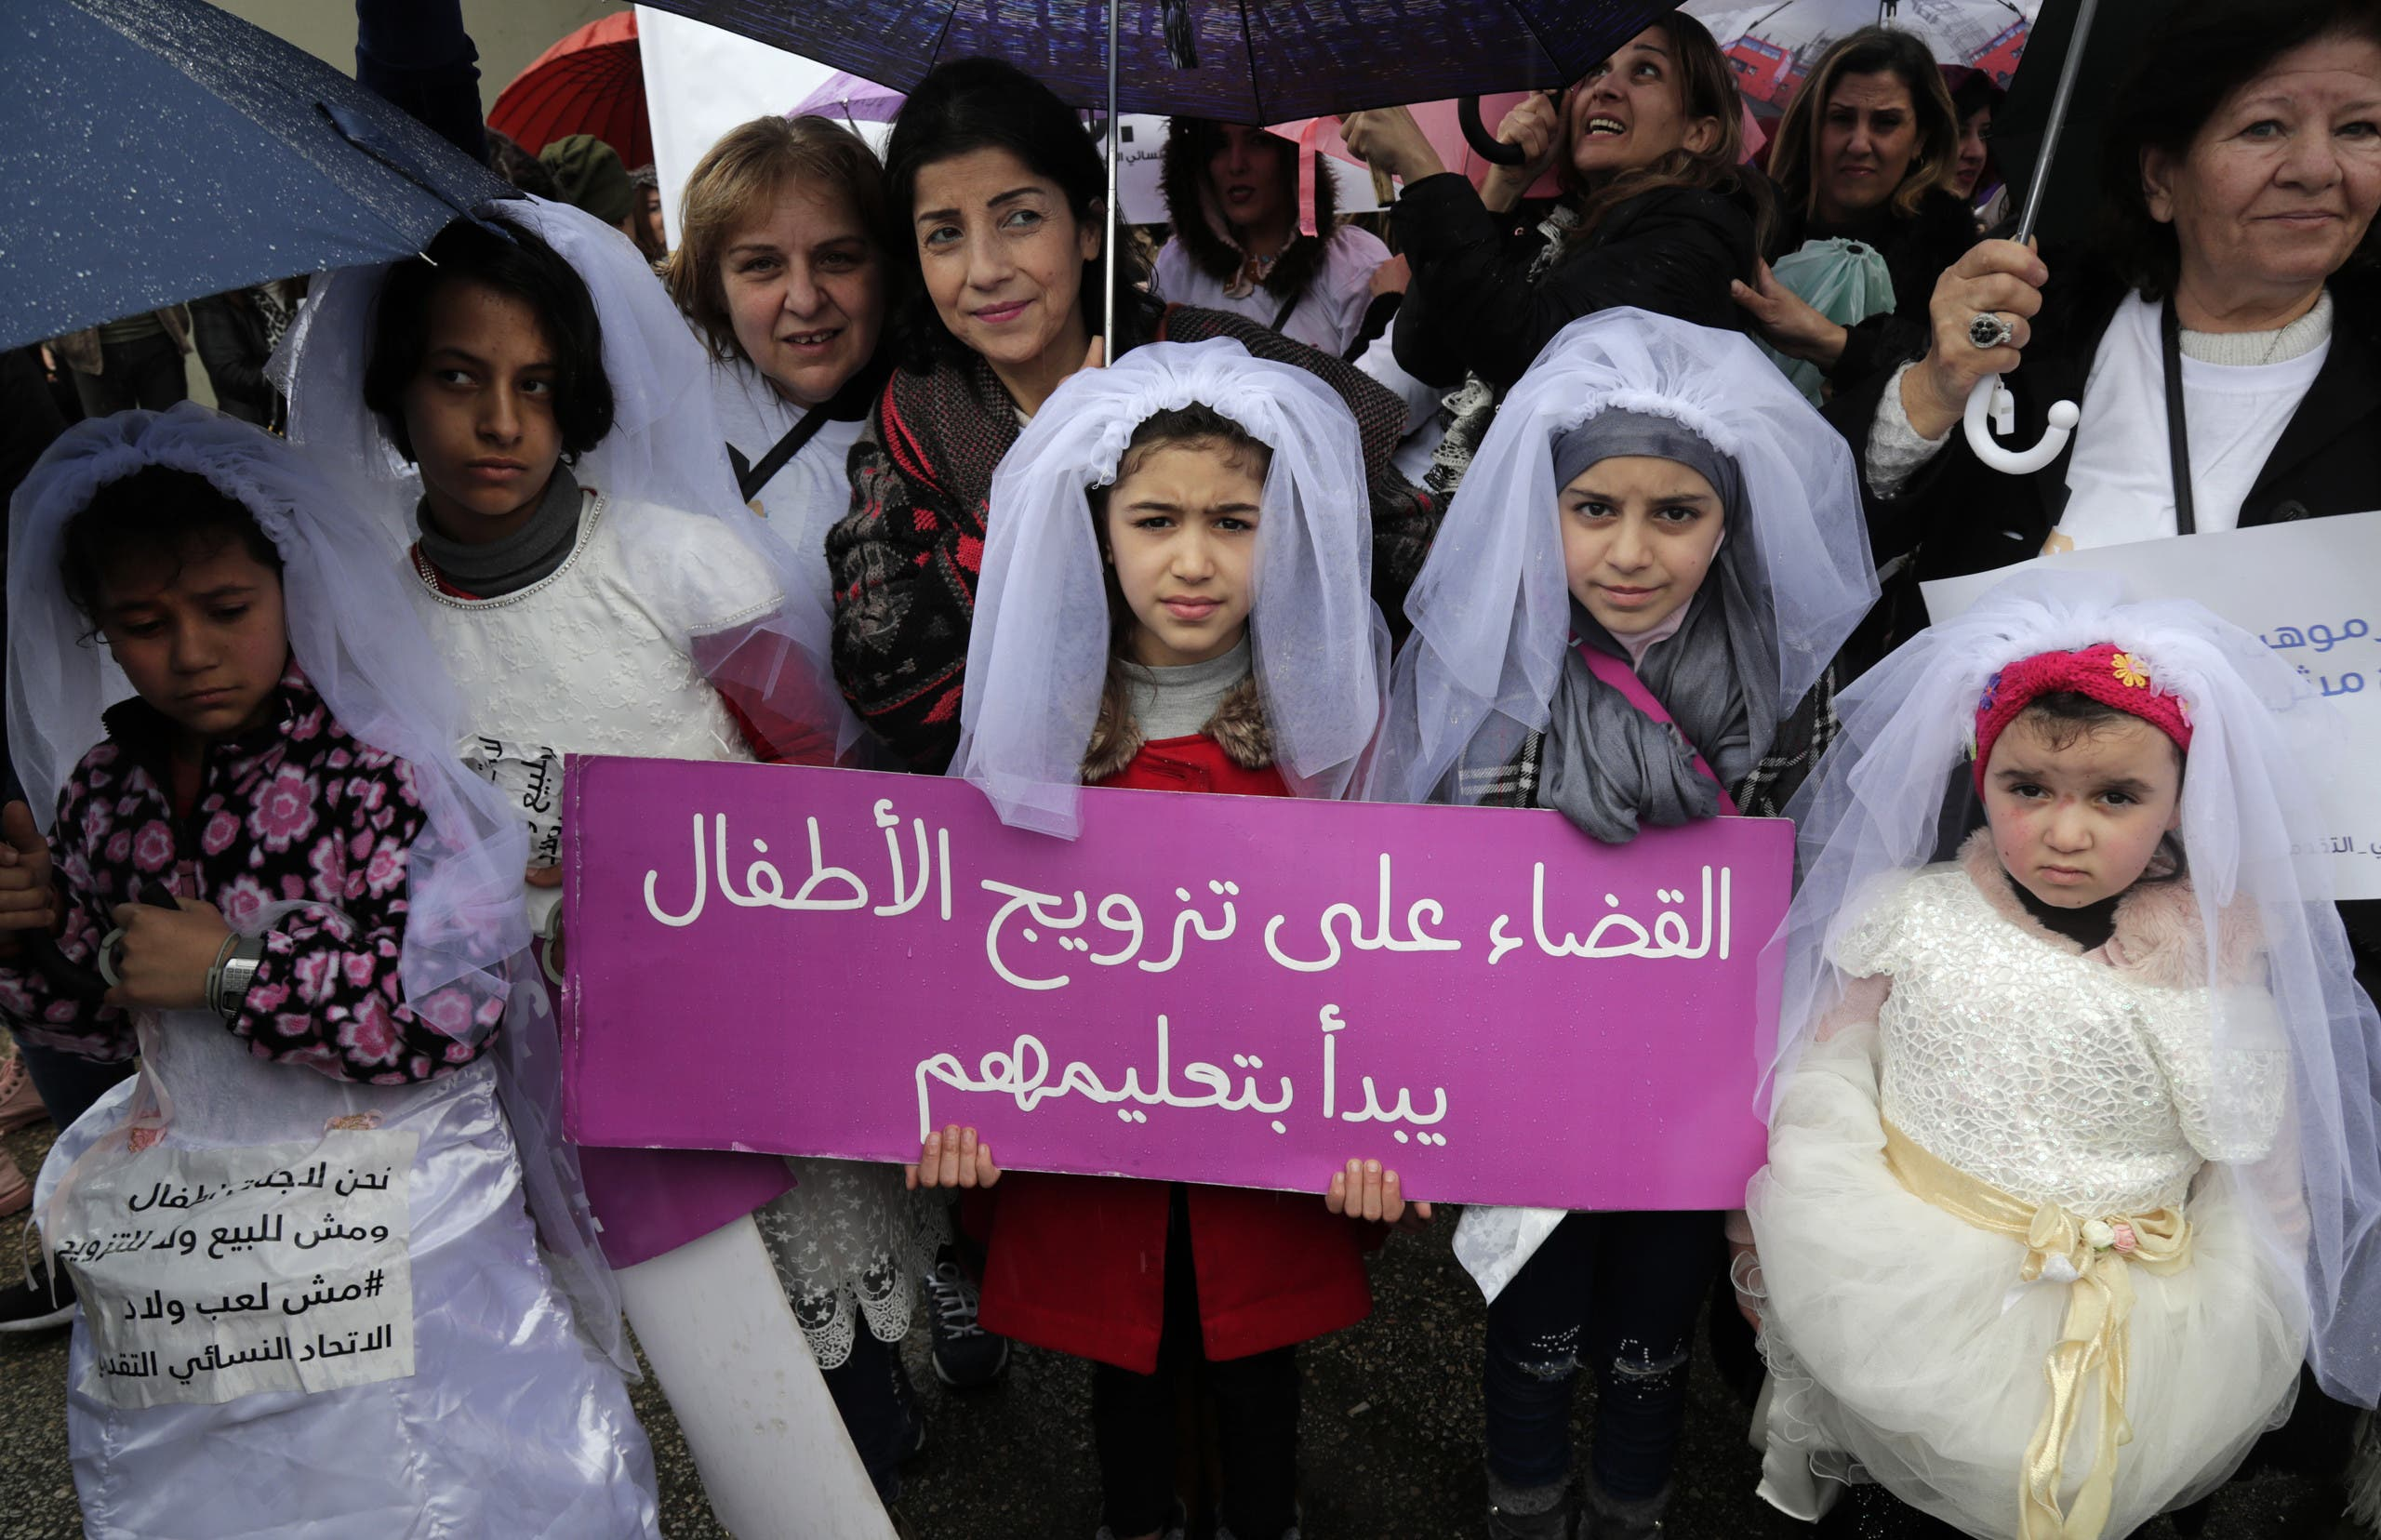 Young Lebanese girls disguised as brides hold a placard as they participate in a march against marriage before the age of 18, in the capital Beirut on March 2, 2019. (AFP)